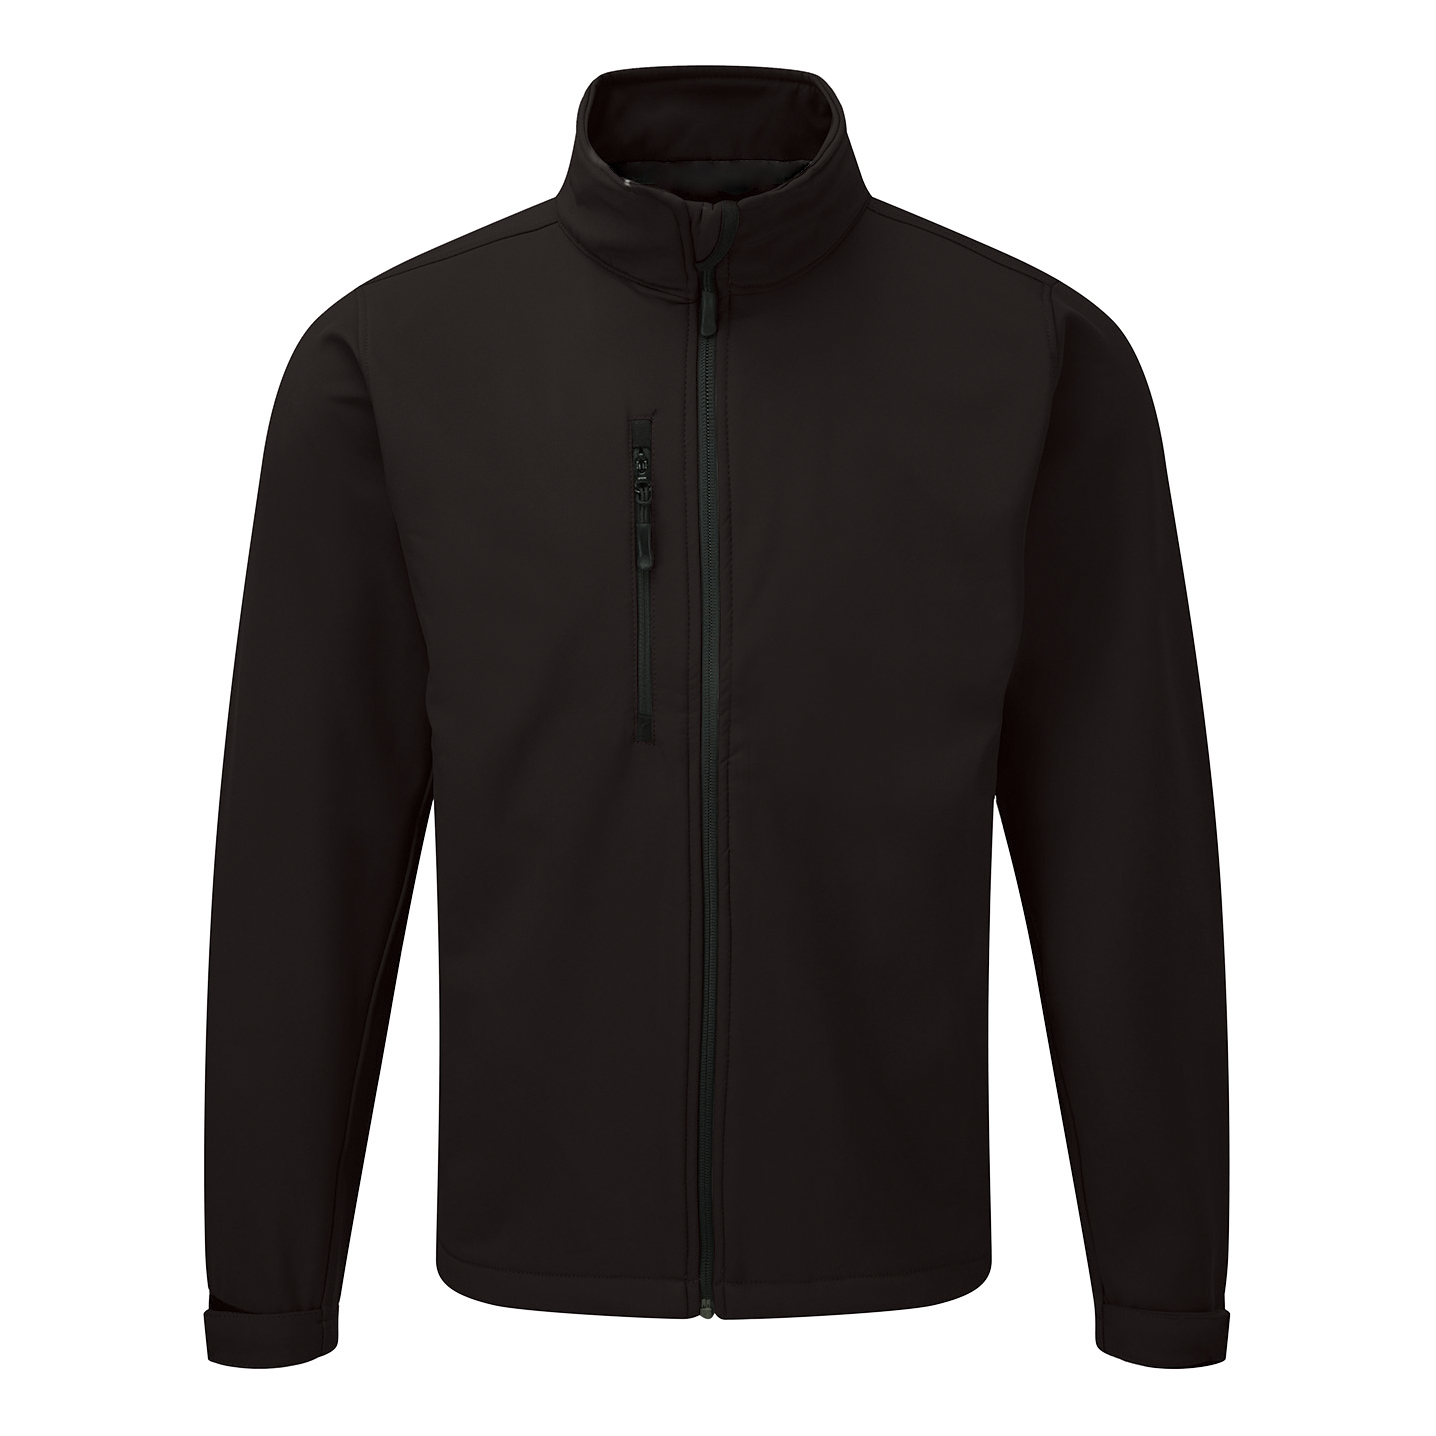 Jacket Soft Shell Water Resistant Breathable 320gsm XL Black